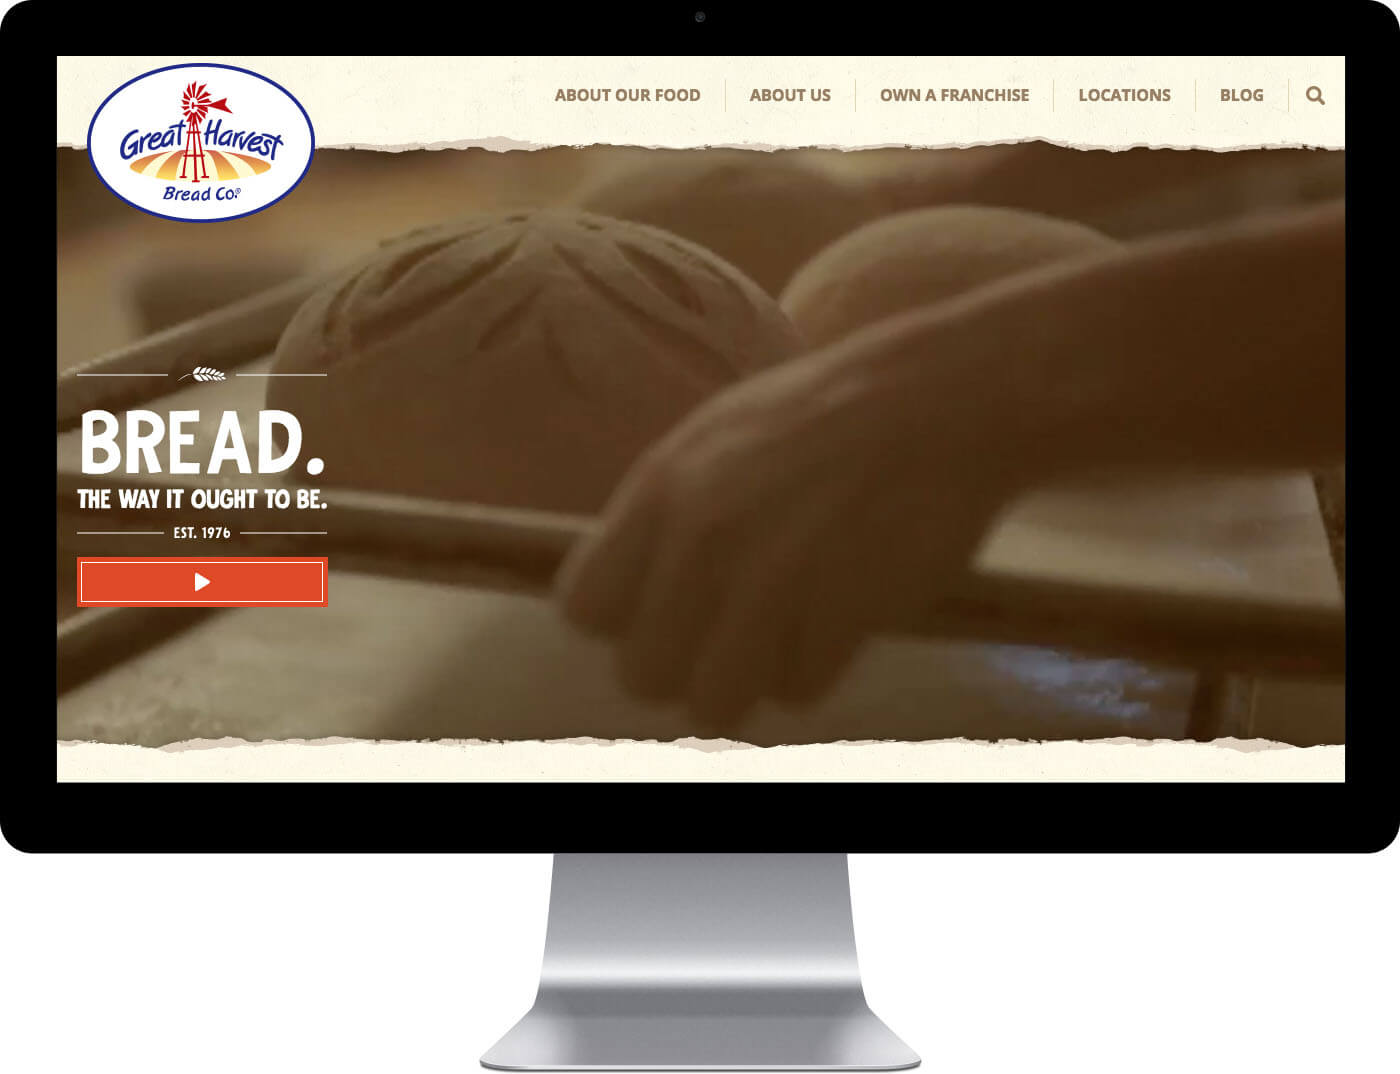 Great Harvest Bread Co's Home page design on a desktop monitor